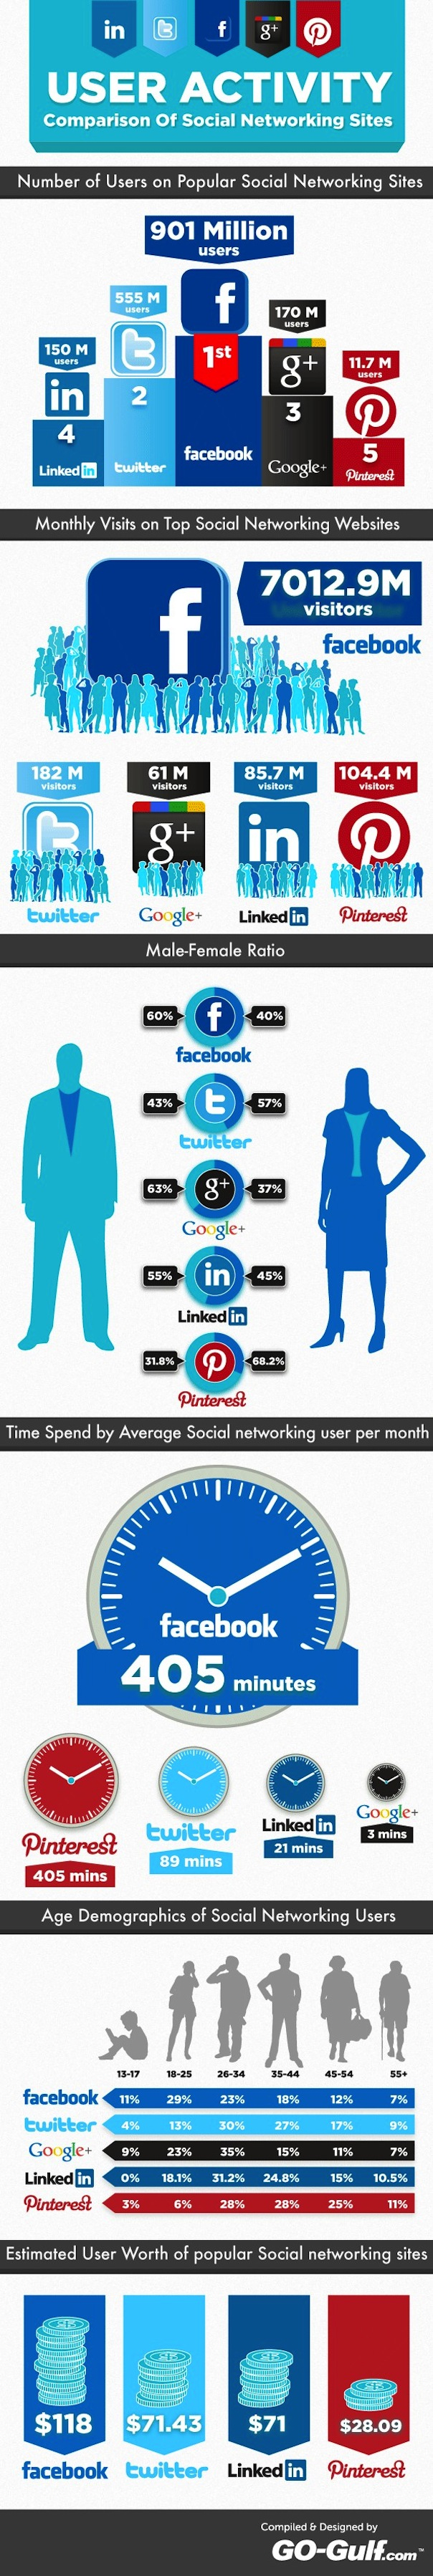 Comparatif LinkedIn Twitter Google+ Facebook Pinterest